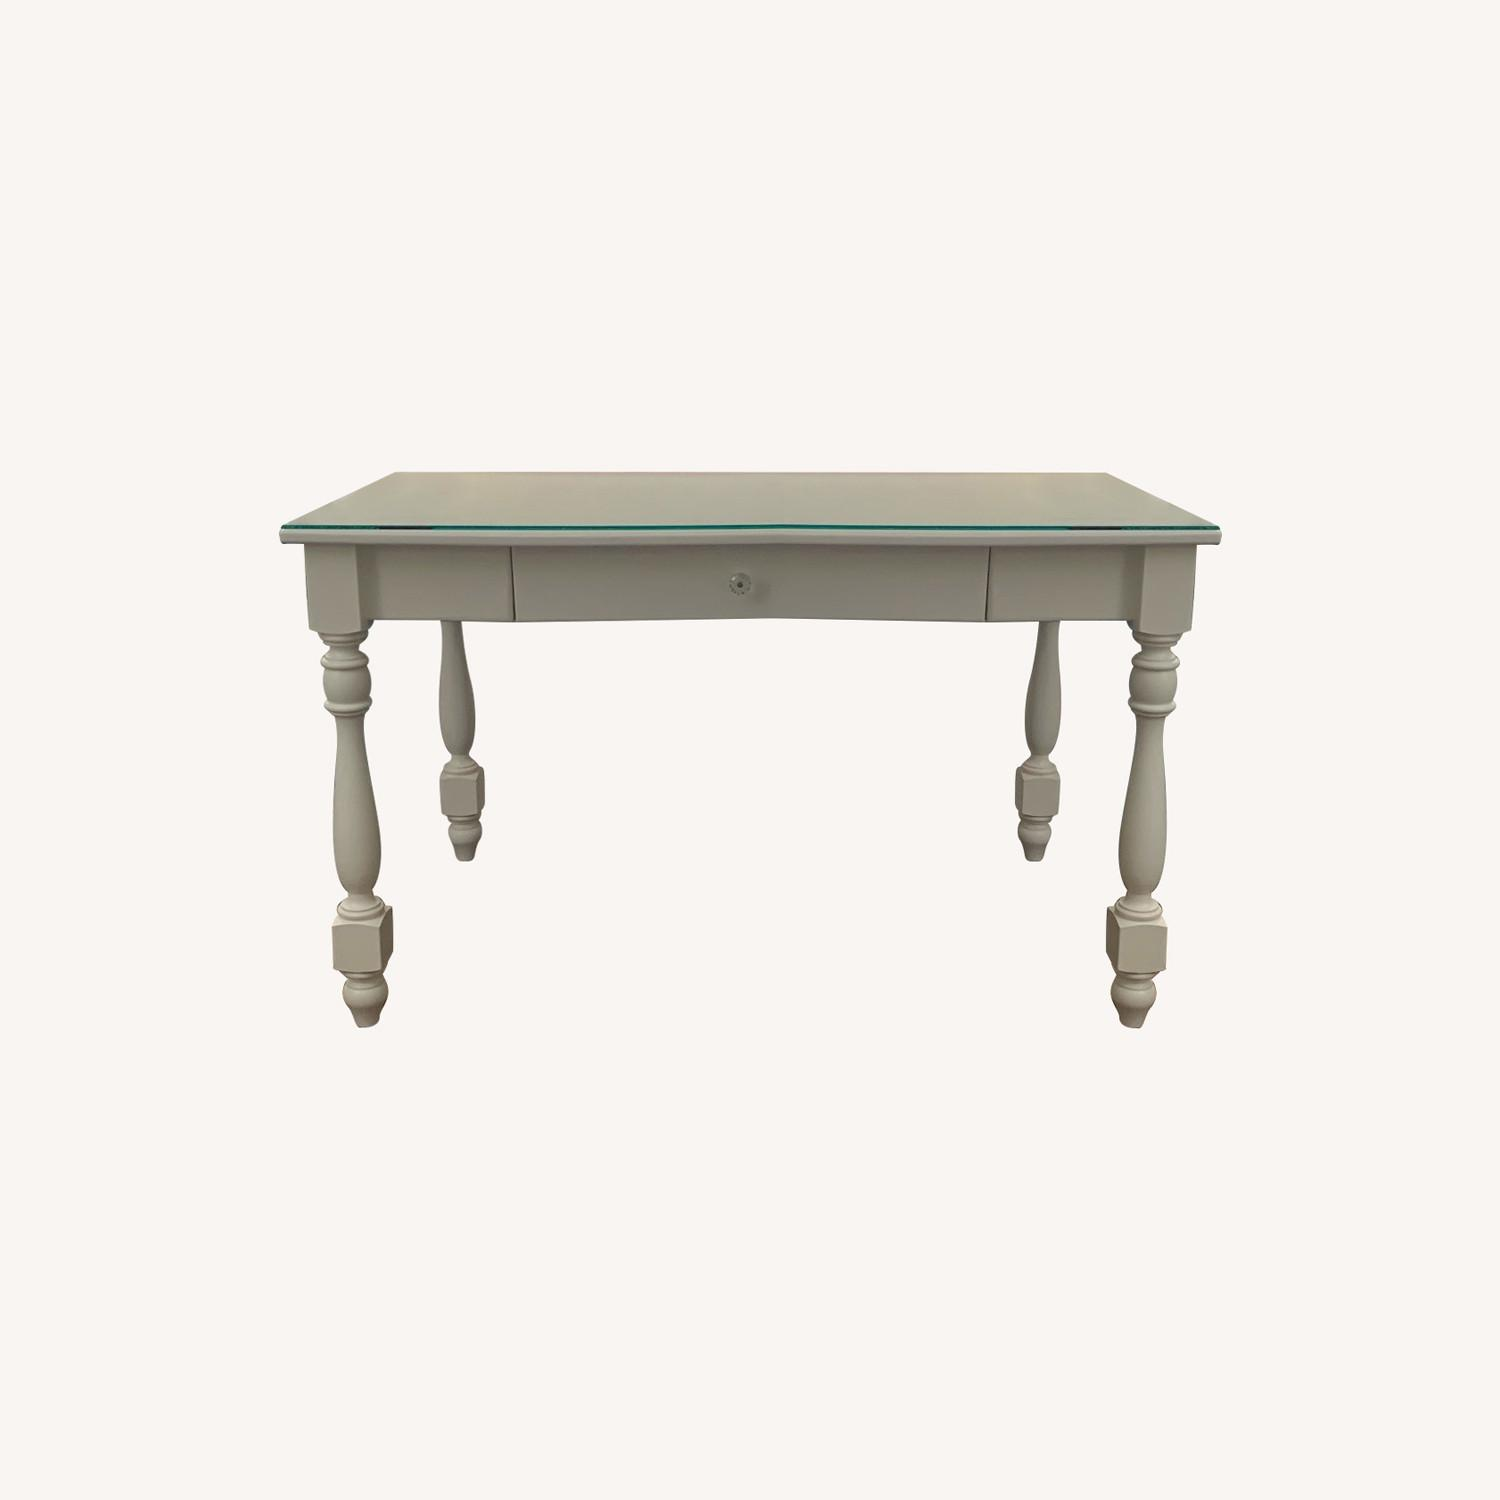 Ivory Colored Wood Desk/Side Table w/Glass Top - image-0